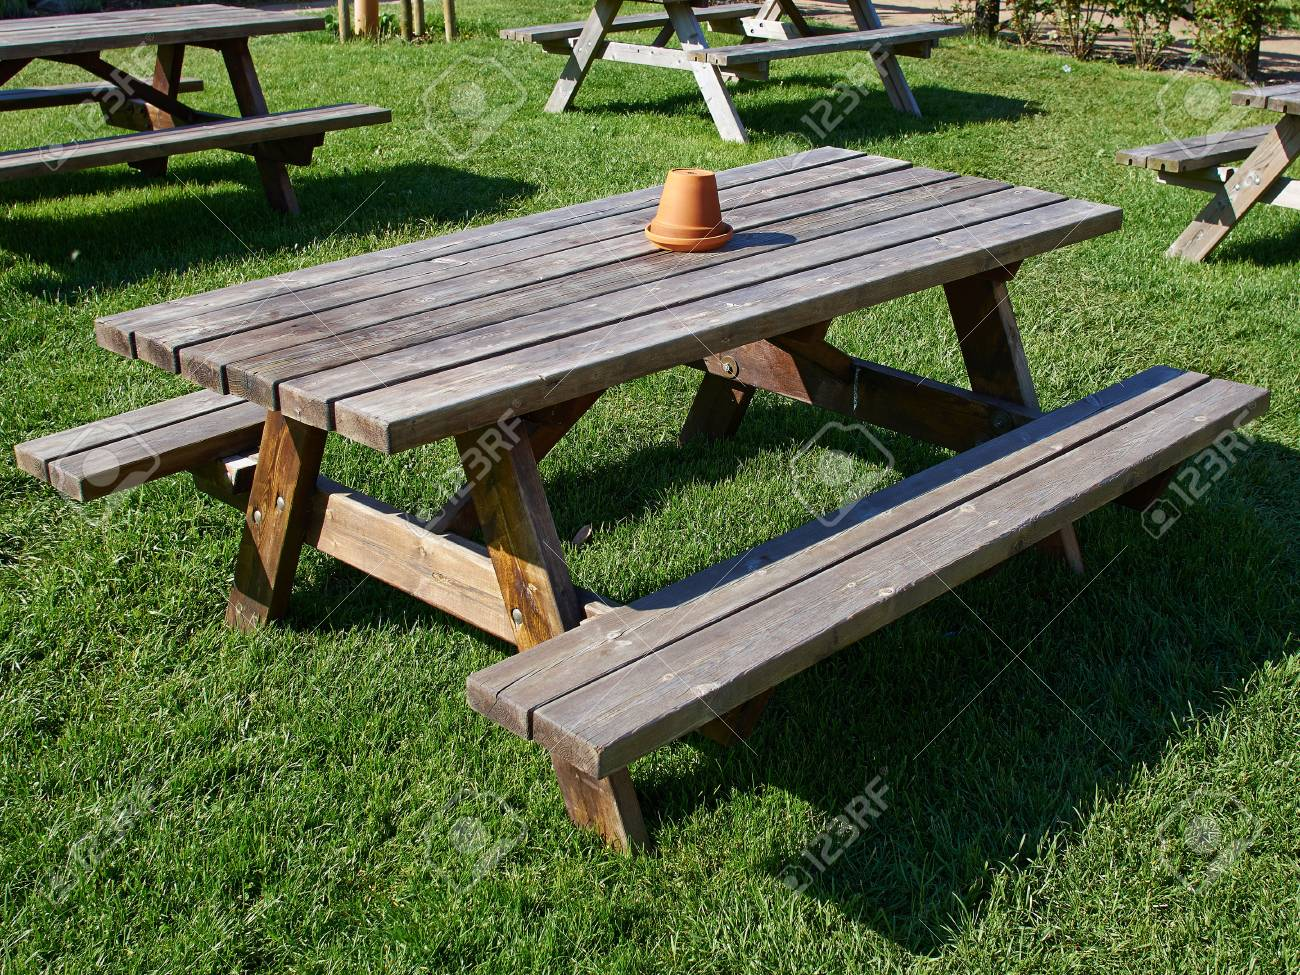 Rustic style Picnic Table made of wood in a beautiful garden